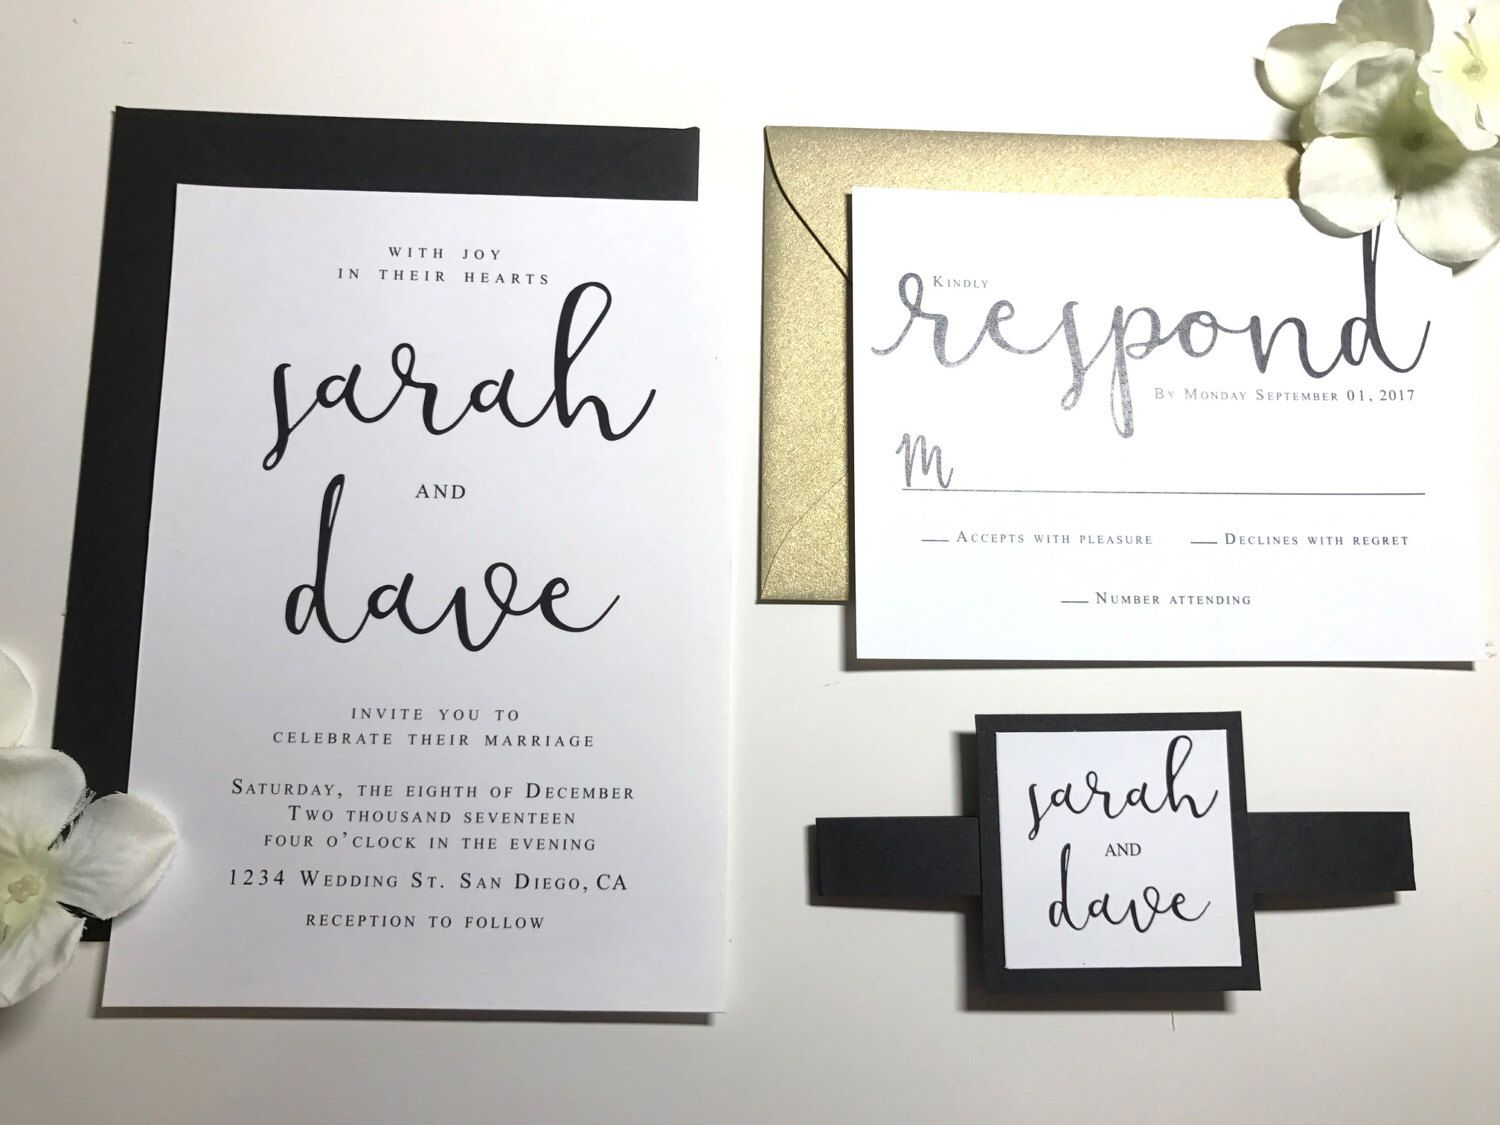 cursive fonts for wedding cards%0A Gold and Black Modern Calligraphy Wedding invitations Black  Classic Flowy Script  Font  Beautiful Elegant